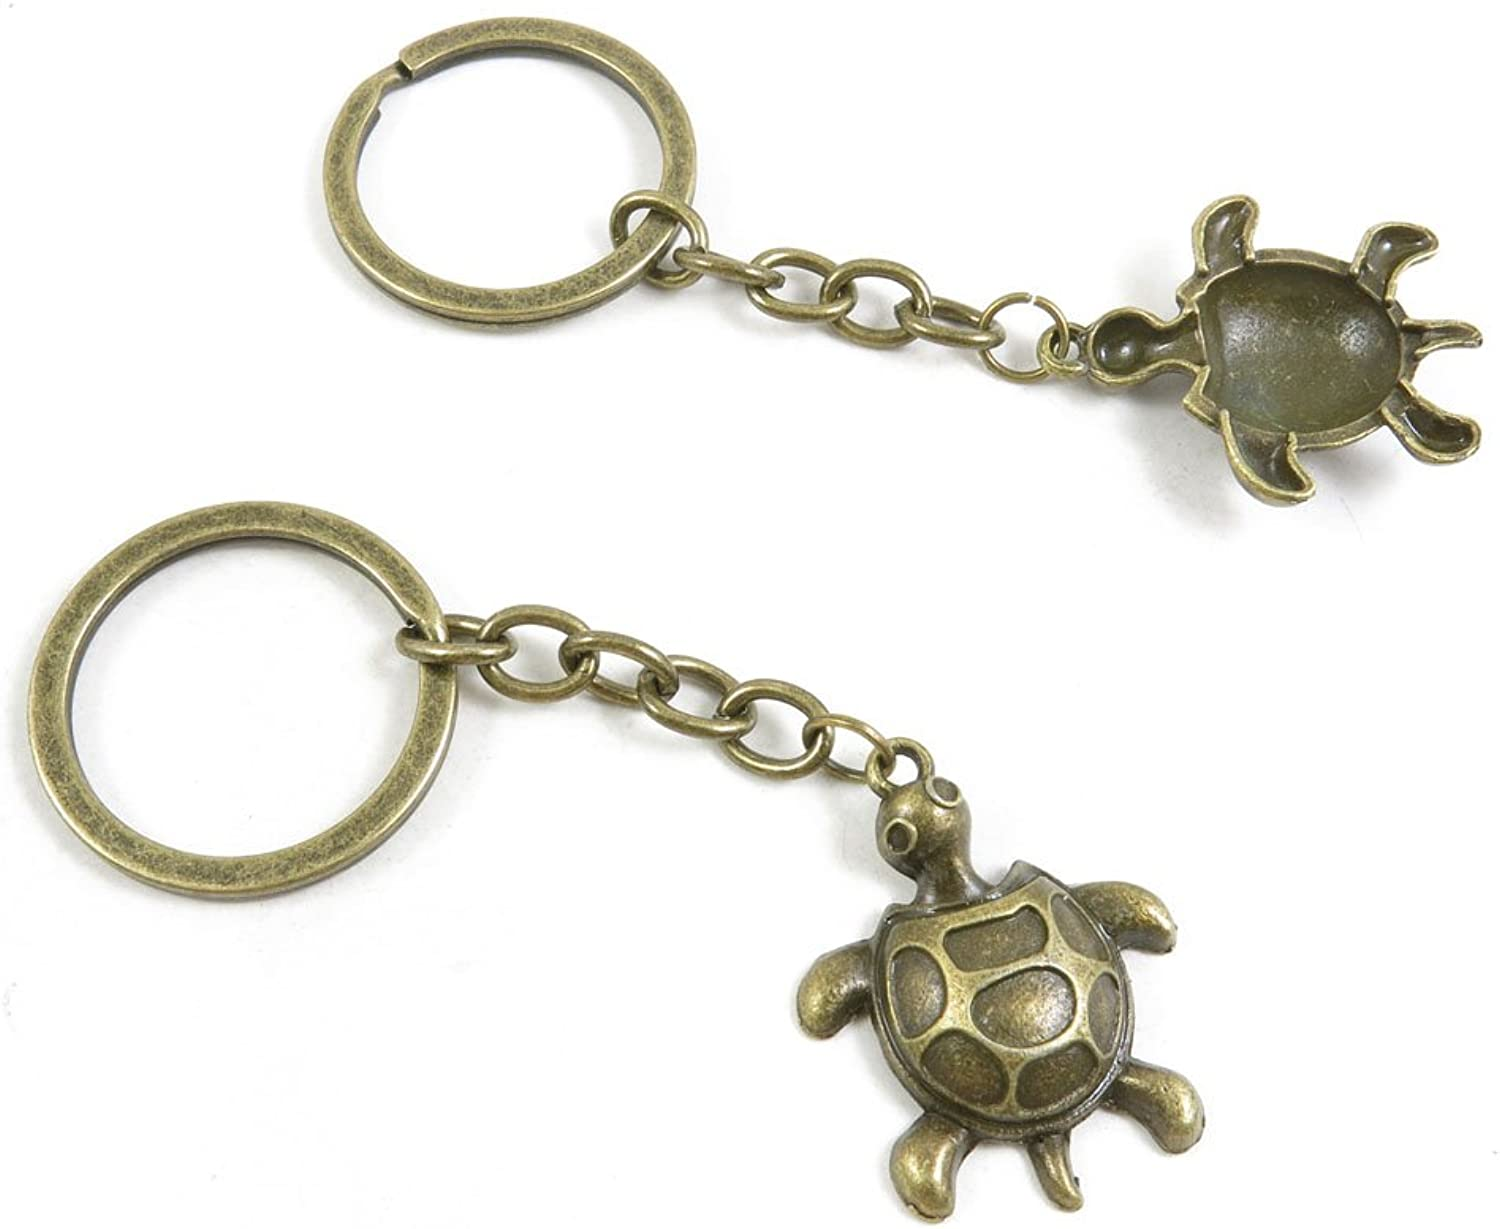 160 Pieces Fashion Jewelry Keyring Keychain Door Car Key Tag Ring Chain Supplier Supply Wholesale Bulk Lots H3AH7 Turtle Tortoise